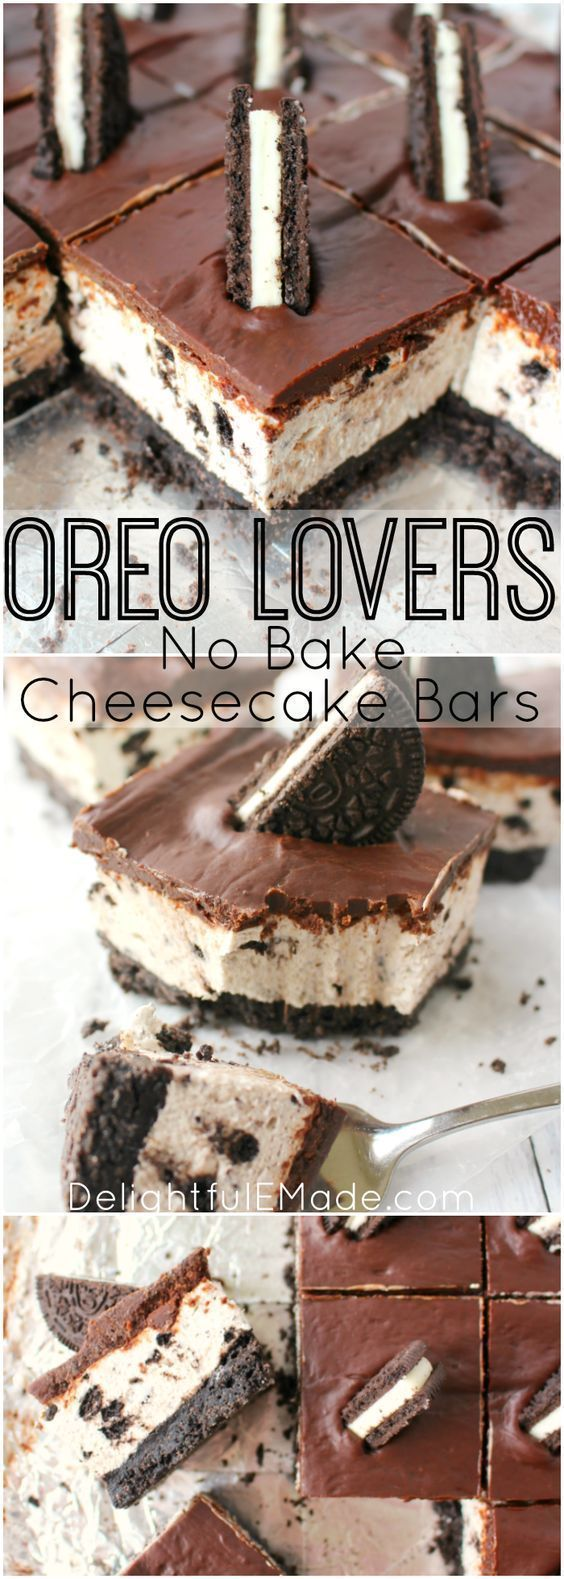 xmas dessert recipes, no carb dessert recipes, easy yummy dessert recipes - The ultimate dessert for anyone that loves OREO cookies! A thick OREO crust, creamy OREO no-bake cheesecake filling, and topped with a delicious layer of chocolate. This easy, no-bake dessert is perfect for just about any occasion!